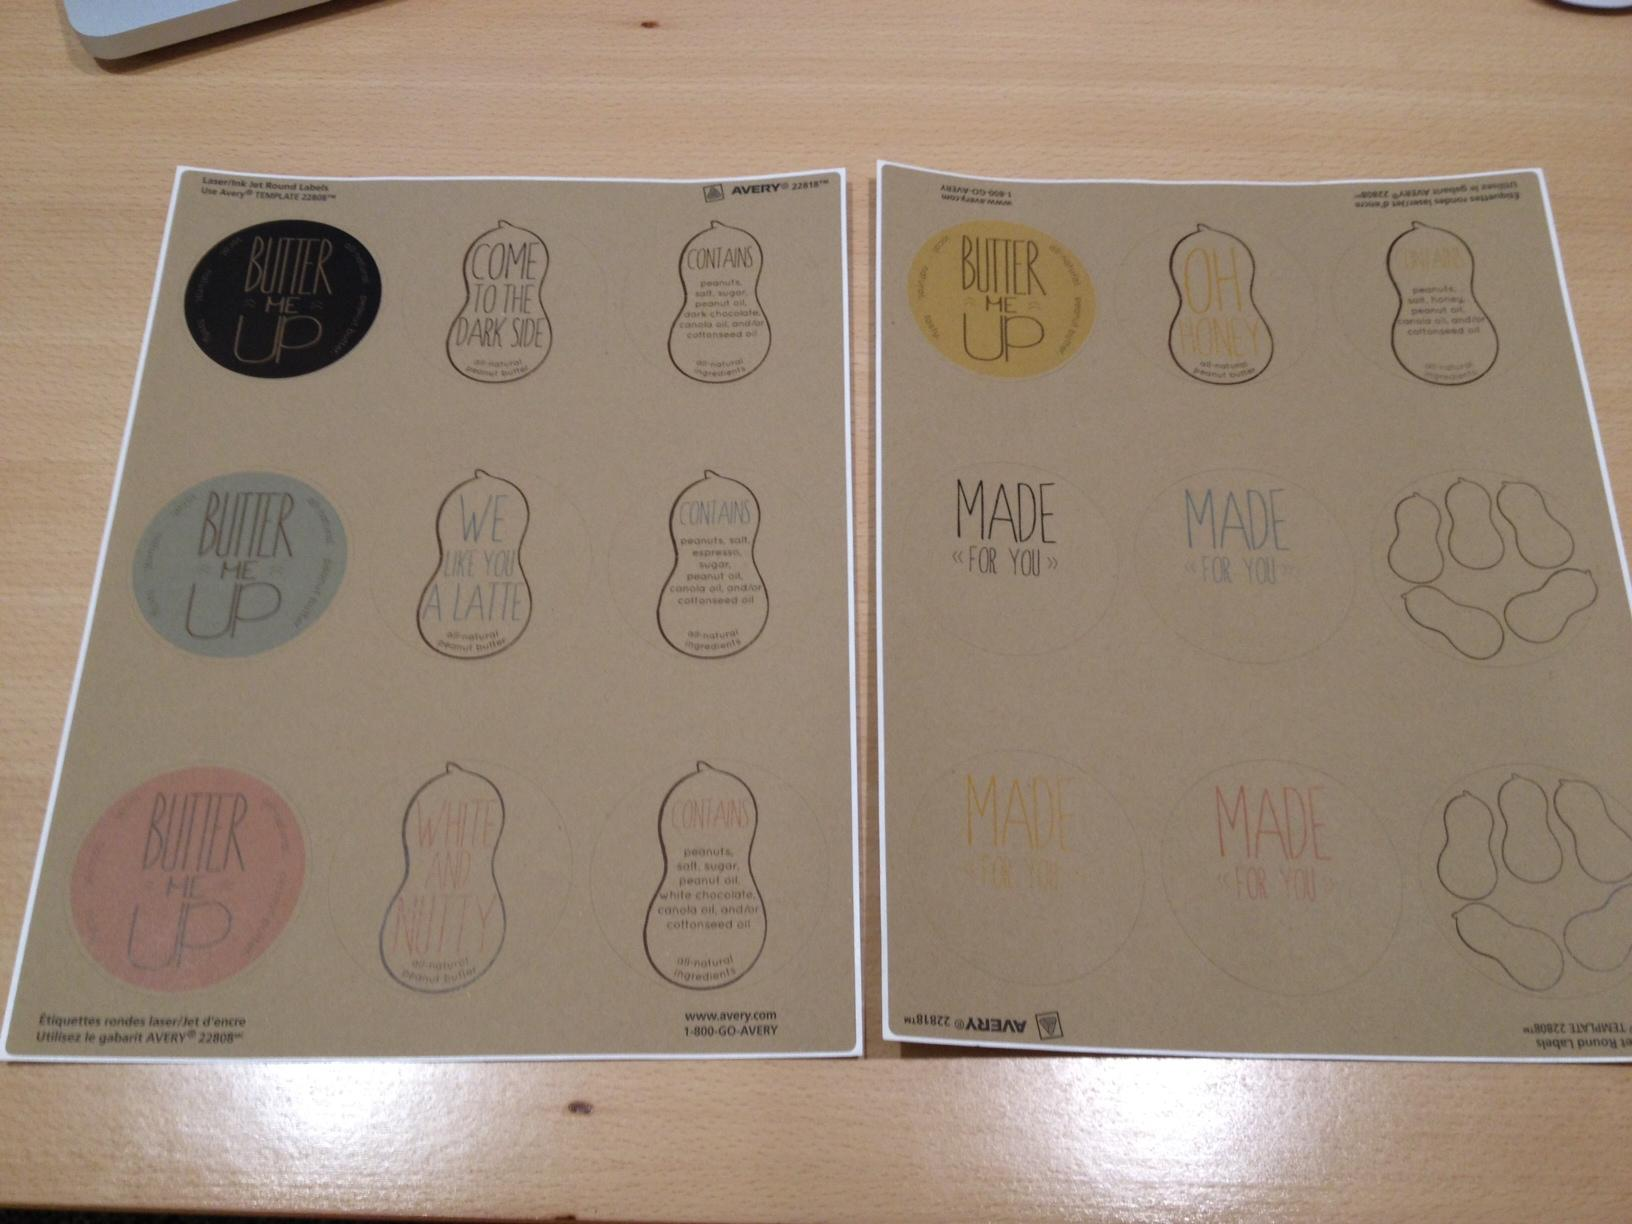 Peanut Butter Packaging - image 7 - student project